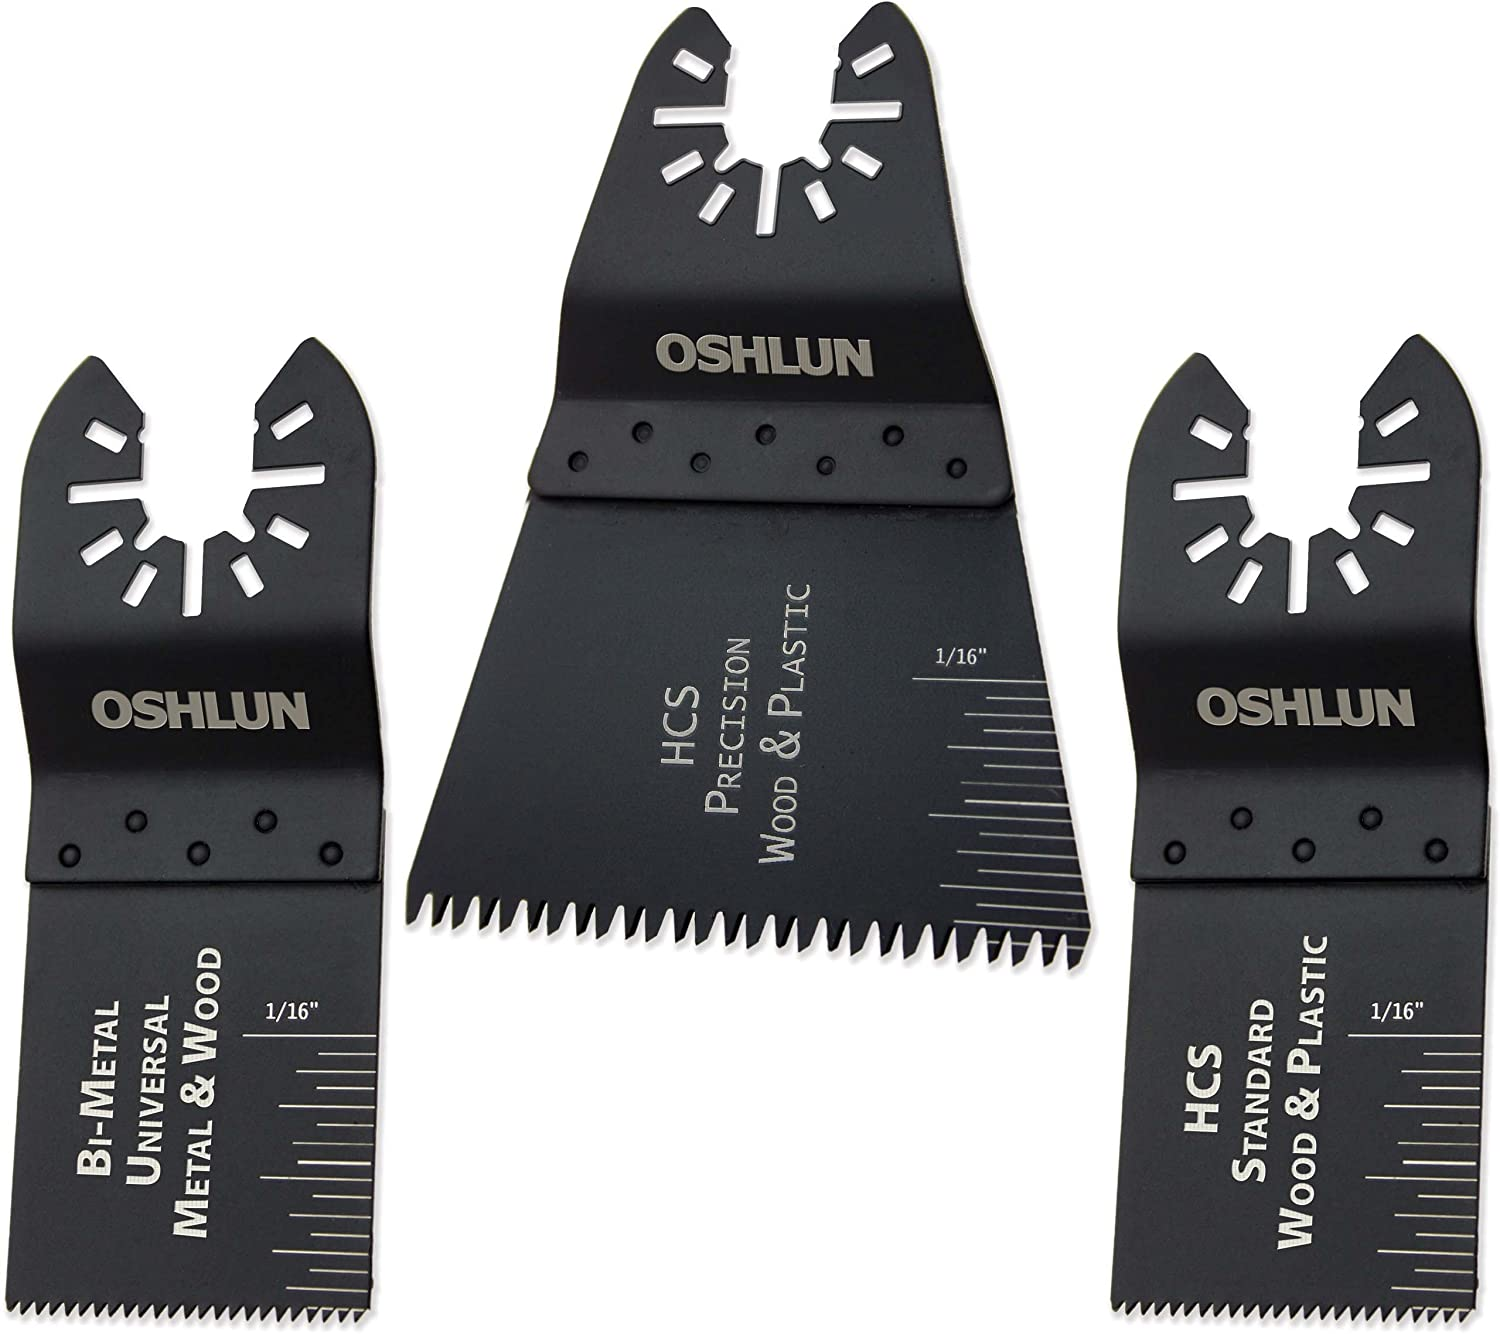 Oshlun MMC-9903 Oscillating Tool Blade Combo with Quick-Fit Arbor (Pack of 3)